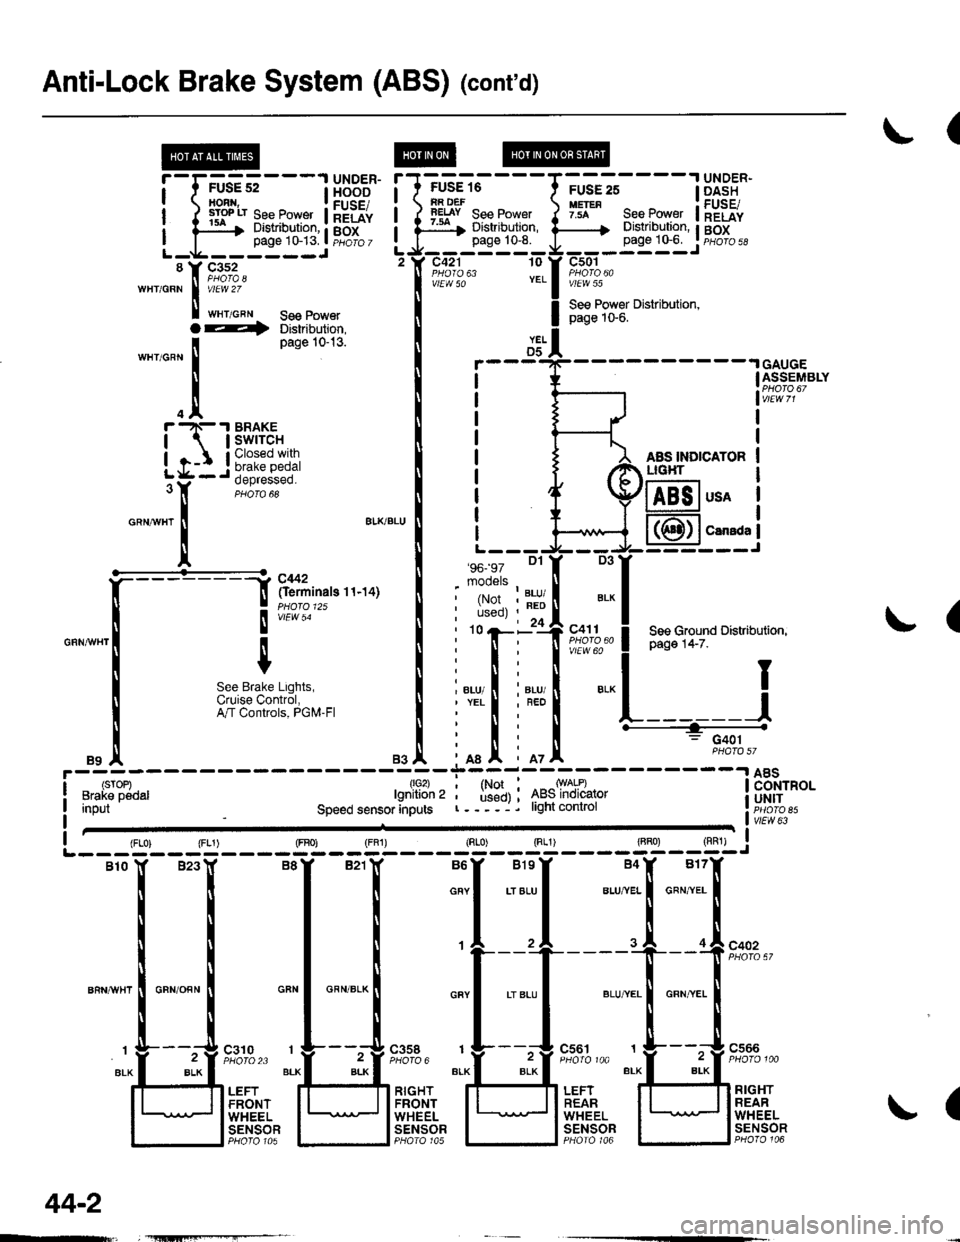 Mini Harley Chopper Wiring Diagram in addition 49cc 2 Stroke Engine Diagram together with Mini Harley Davidson Scooter Parts moreover 50cc Cooter Wiring Diagram additionally 49CCexpV. on 49cc mini harley chopper scooter